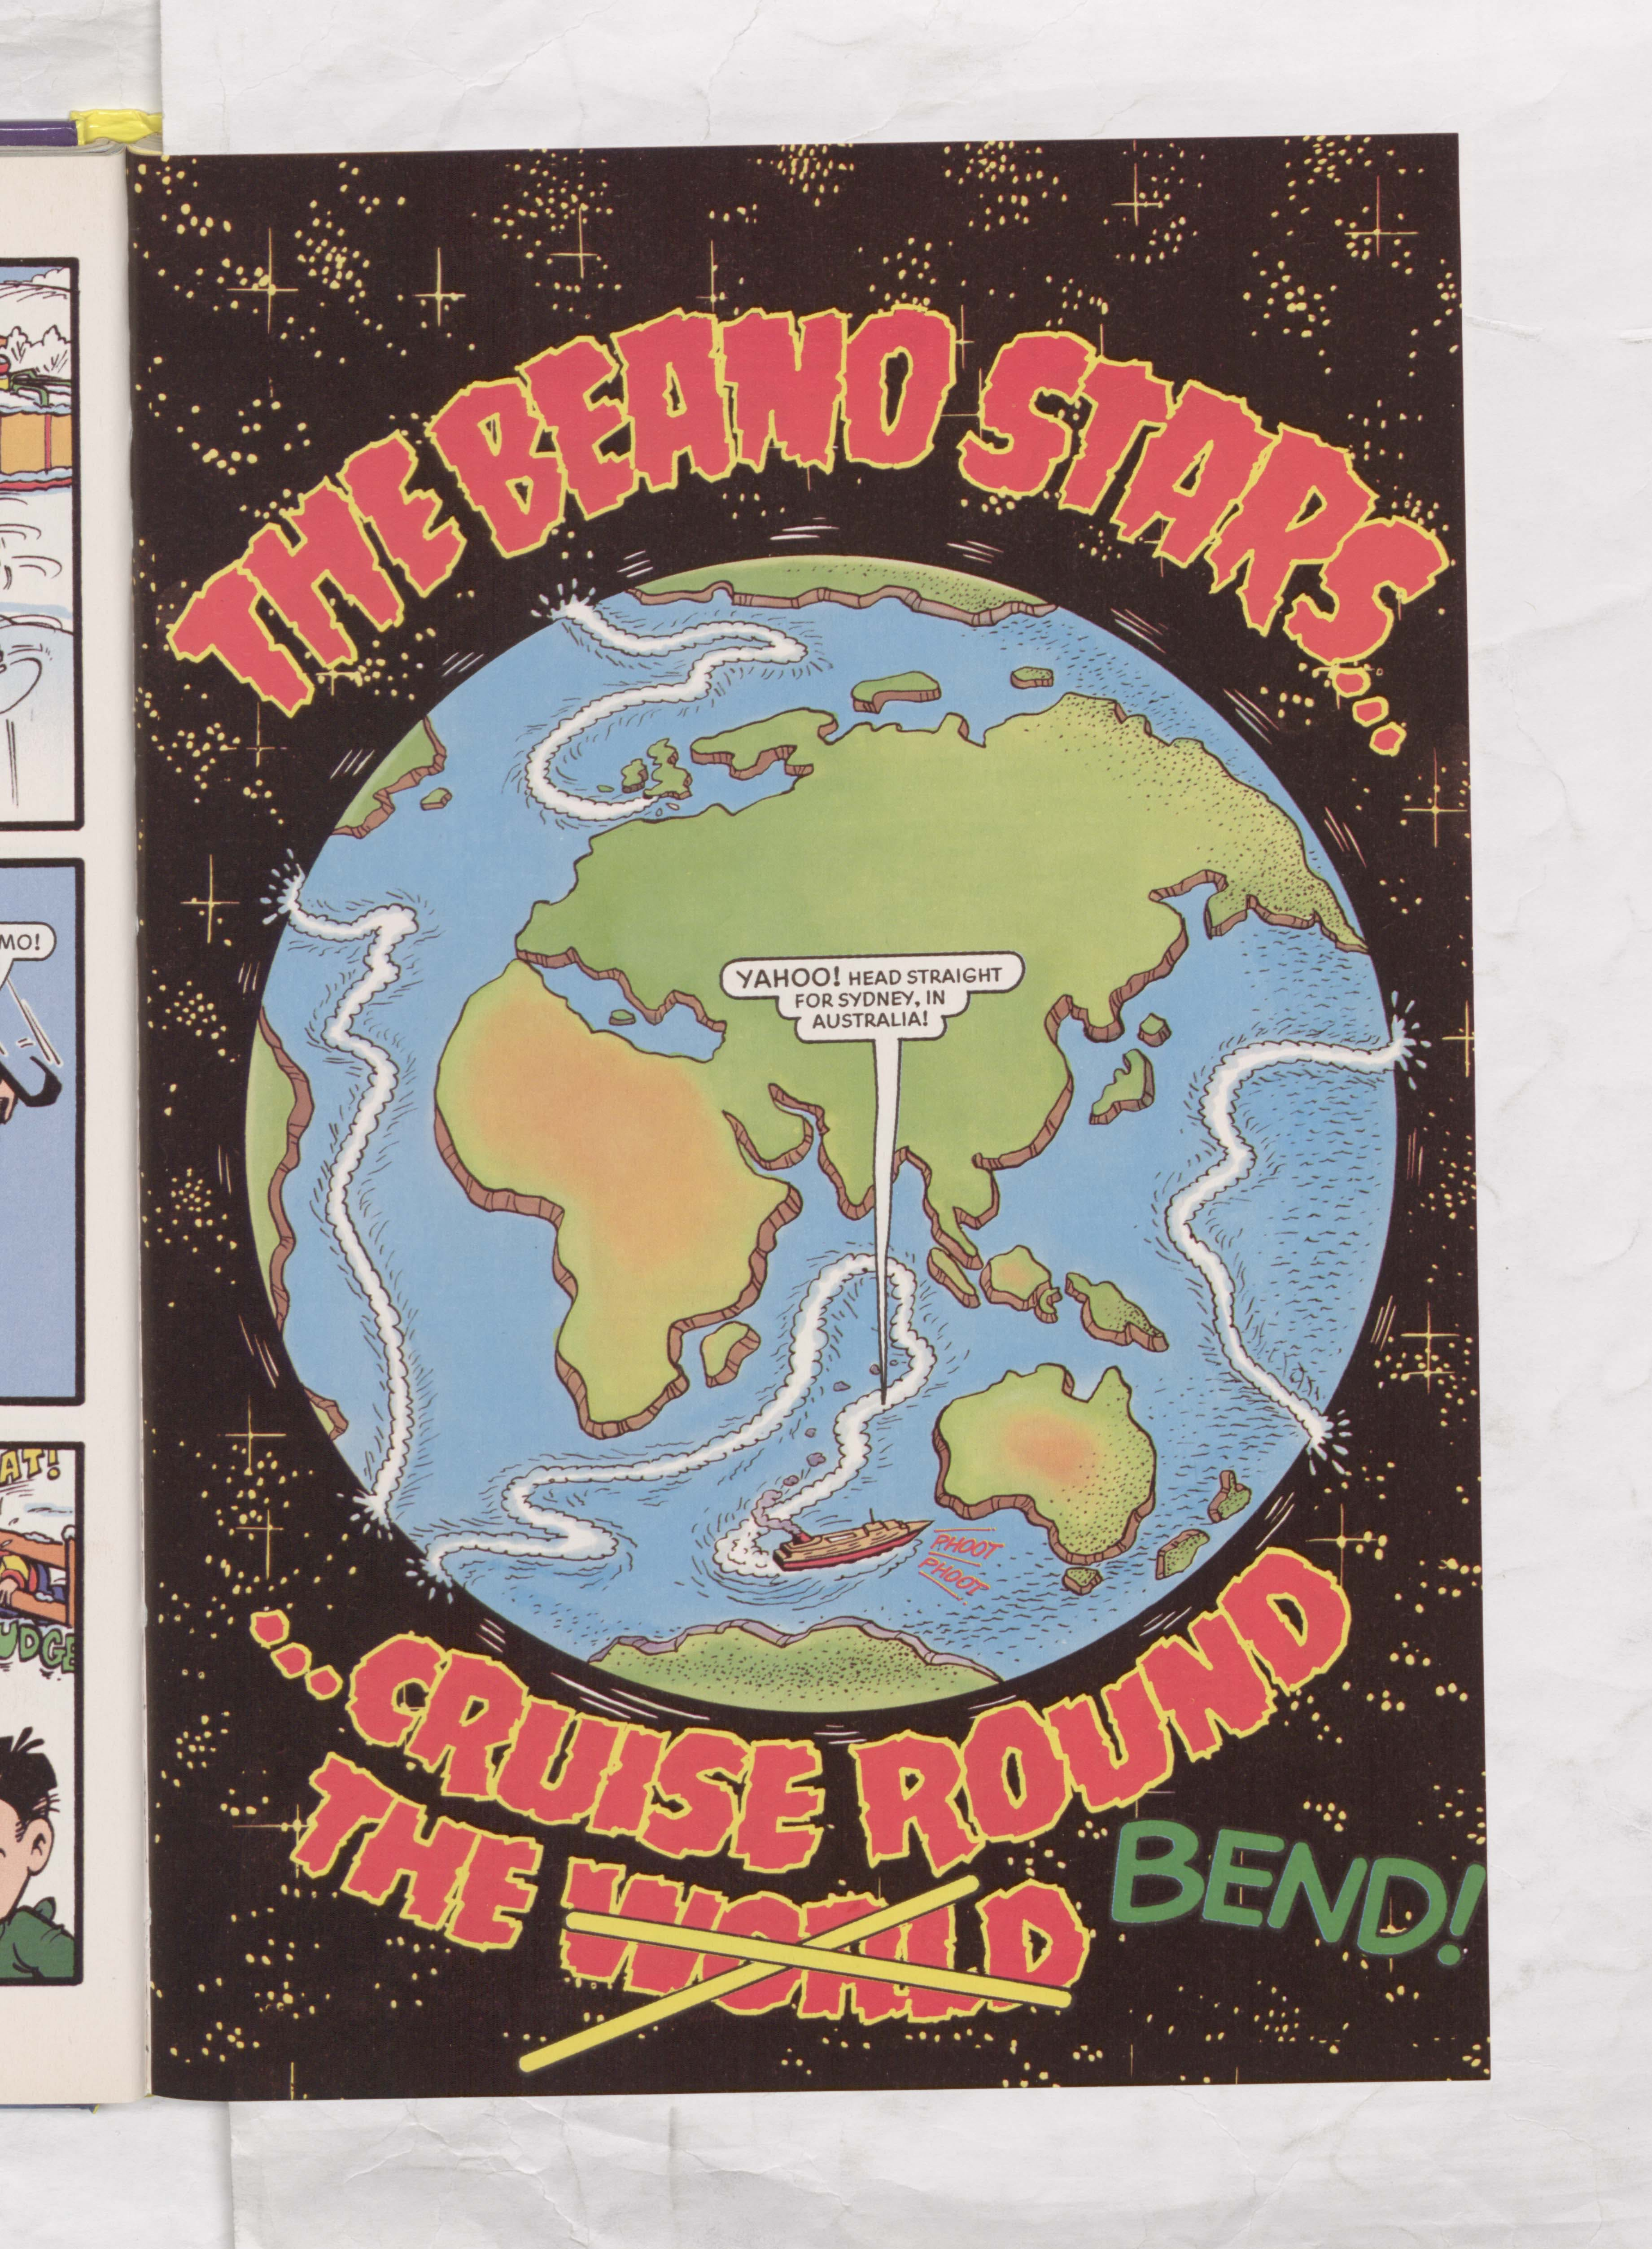 The Beano Stars Cruise Round the World - Beano Book 2000 Annual - Page 1